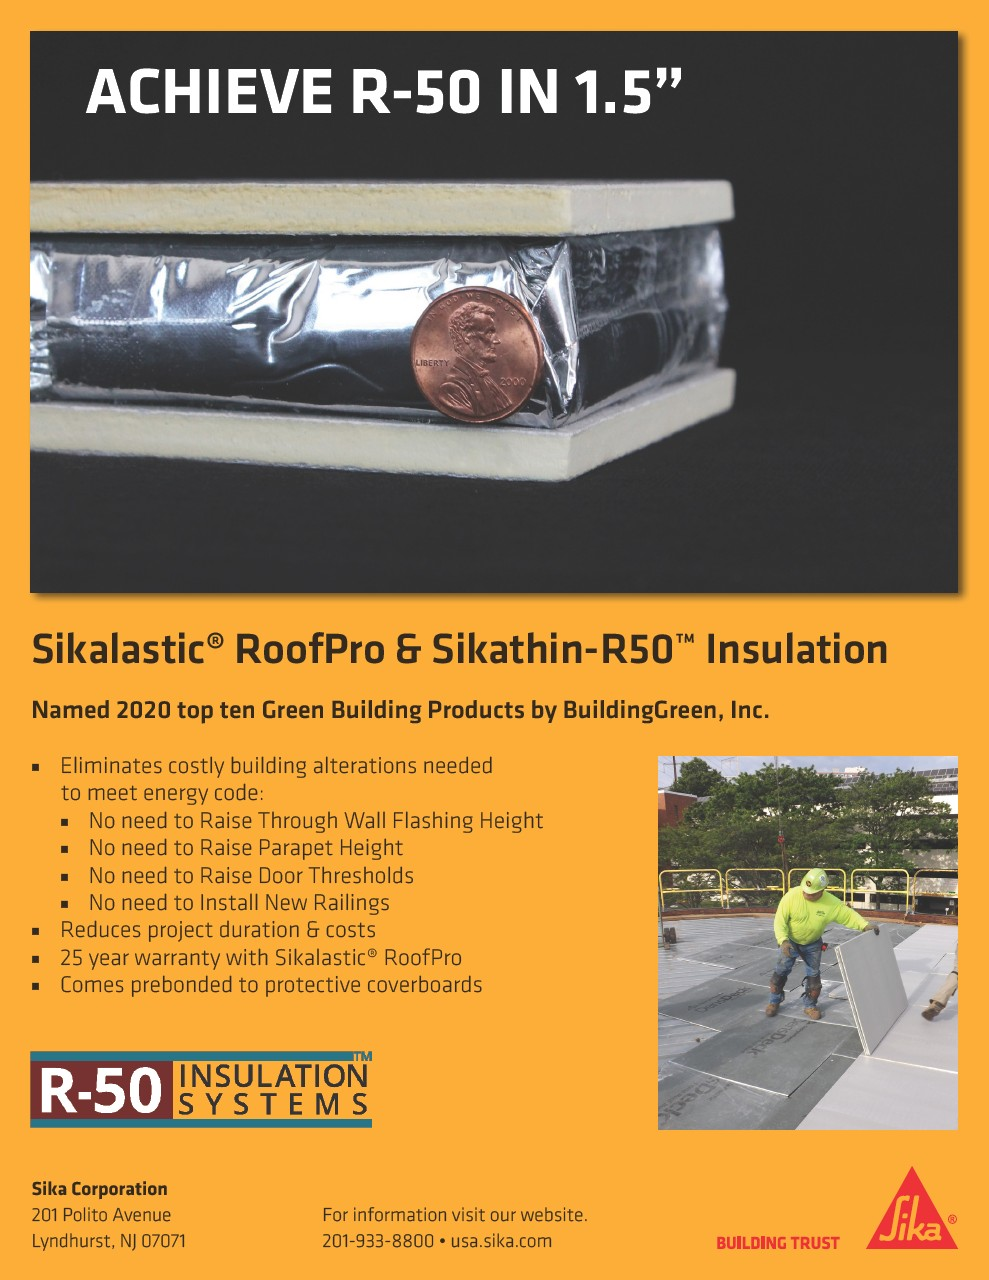 Download Flyer for Sikalastic RoofPro & Sikathin-R50 Insulation